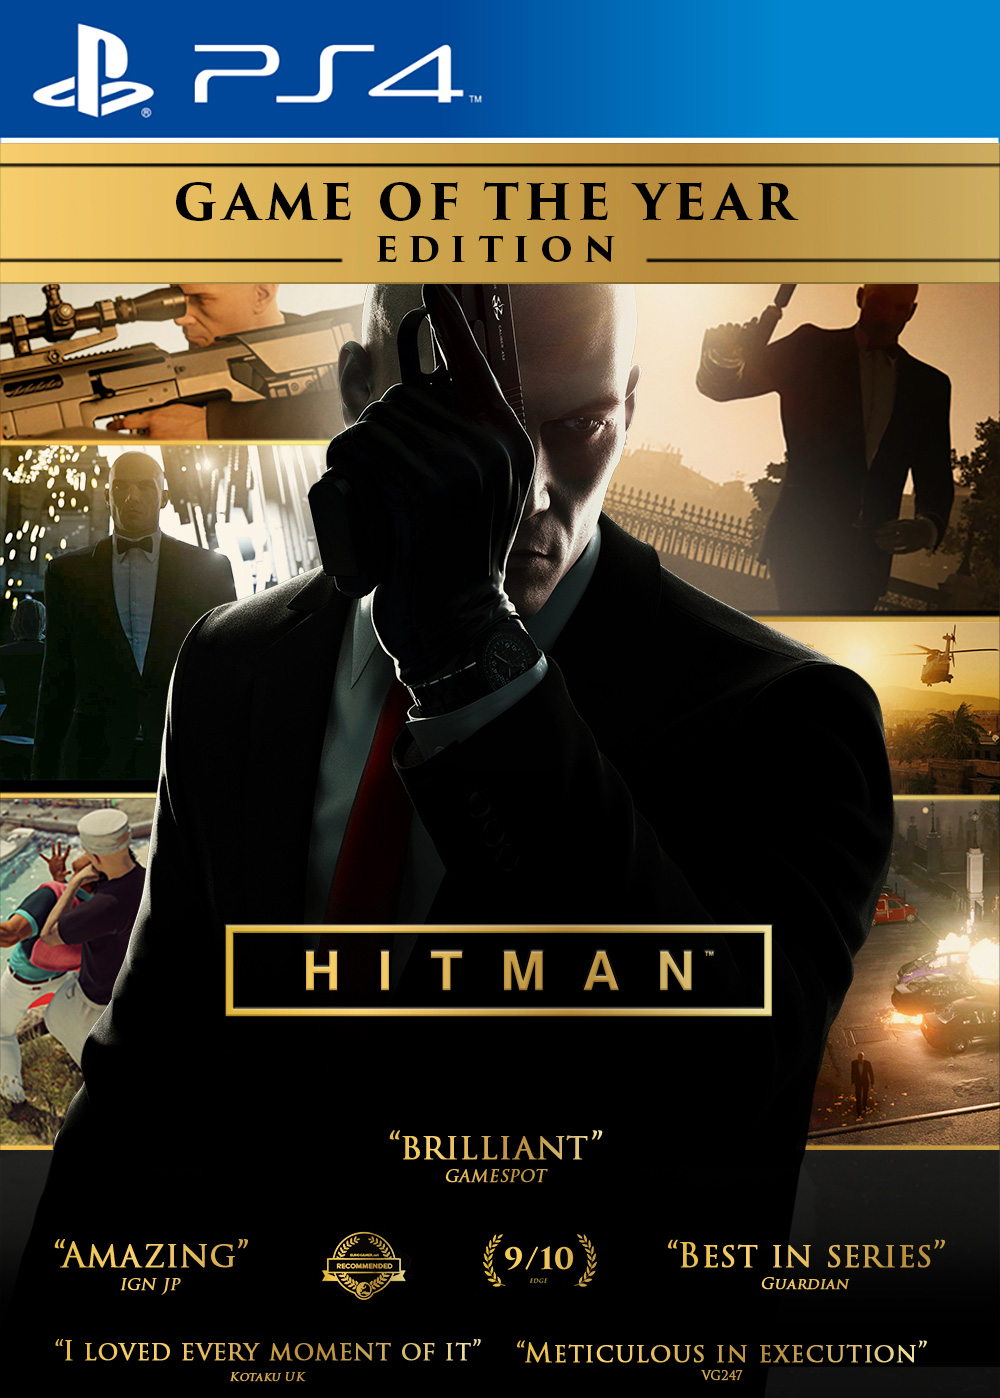 https://img5.downloadha.com/hosein/files/2018/06/HITMAN-Game-of-the-Year-Edition-ps4-cover-large.jpg